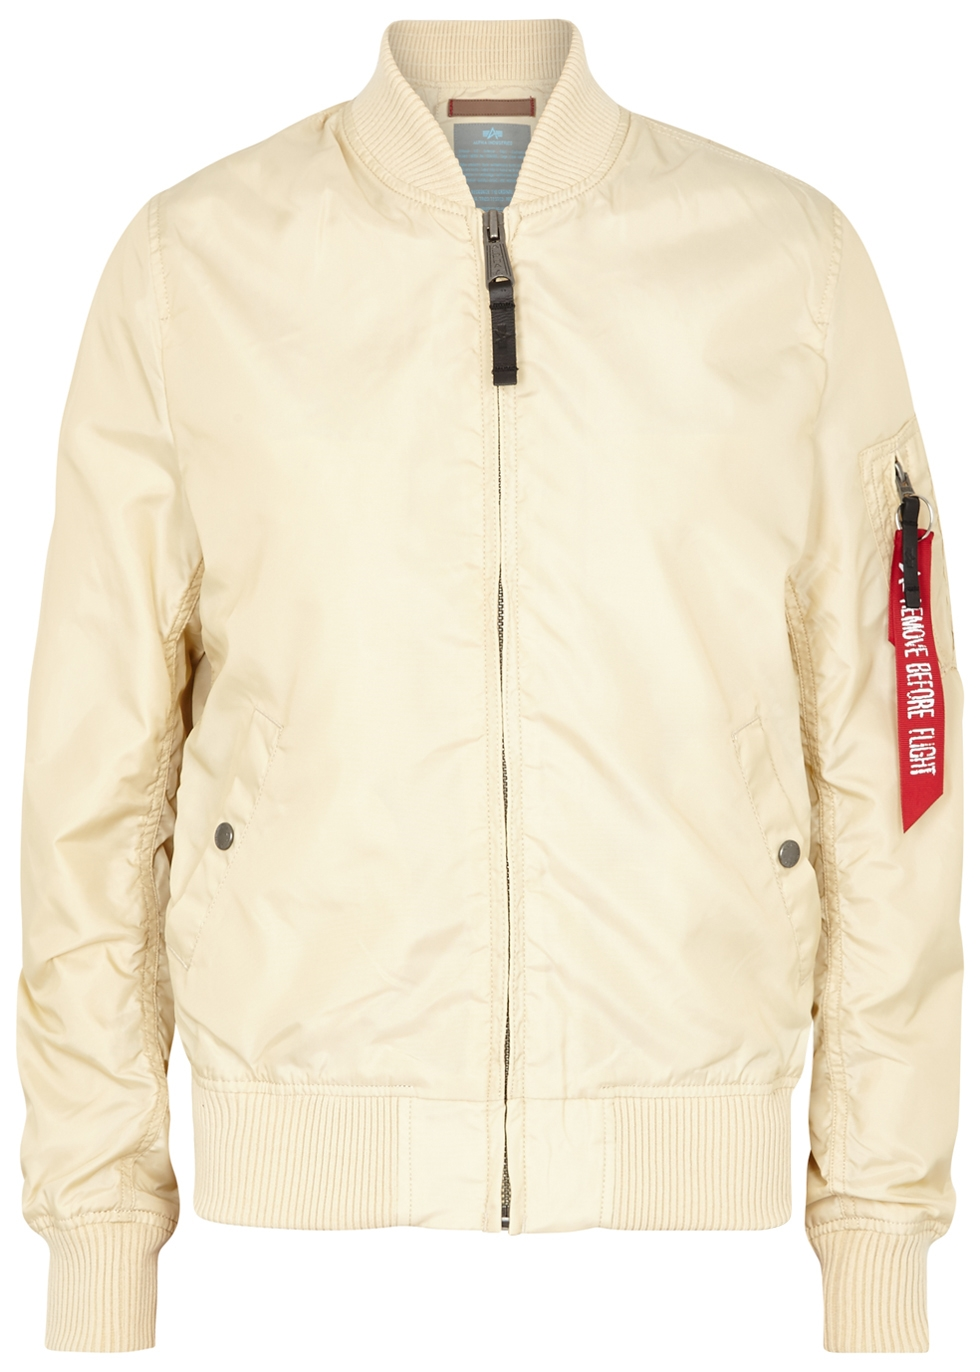 Ma1-Tt Ecru Bomber Jacket in Cream